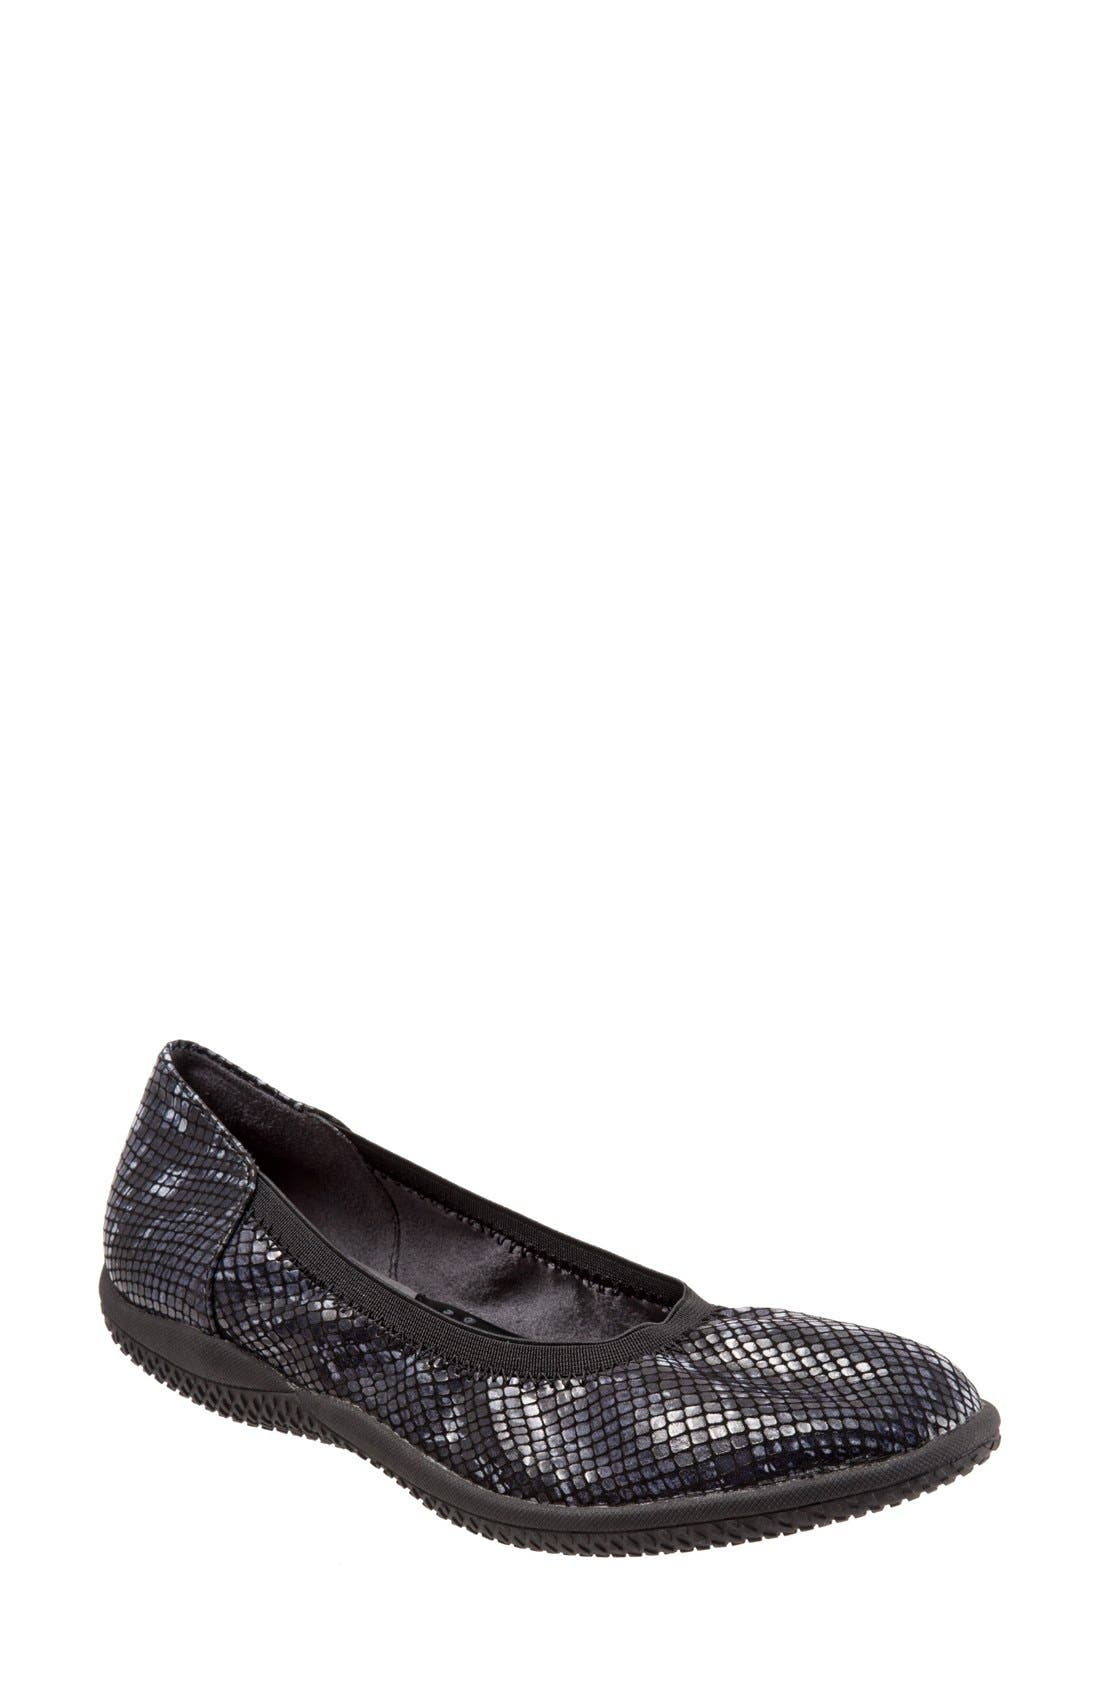 'Hampshire' Dot Perforated Ballet Flat,                             Main thumbnail 1, color,                             Black Python Print Leather